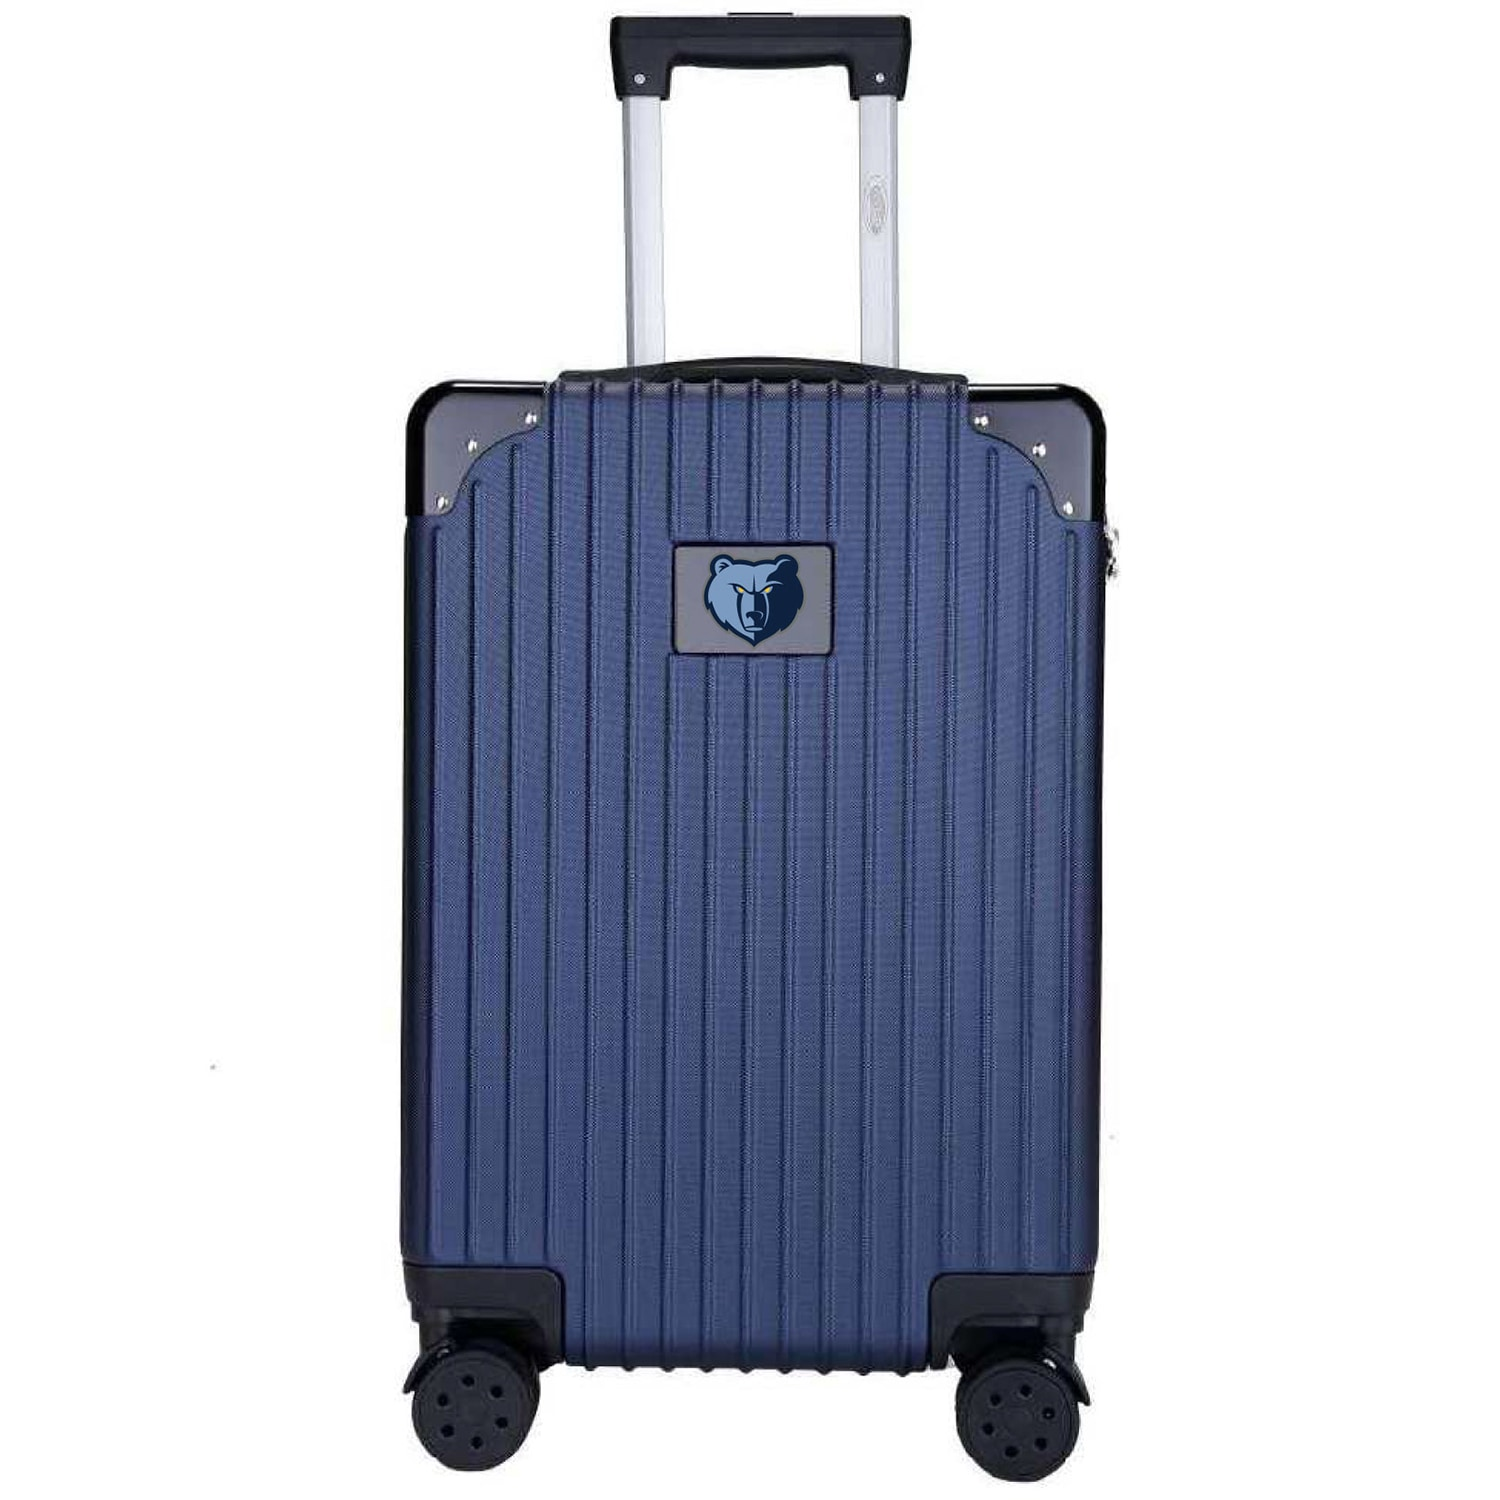 Memphis Grizzlies Premium 21'' Carry-On Hardcase Luggage - Navy